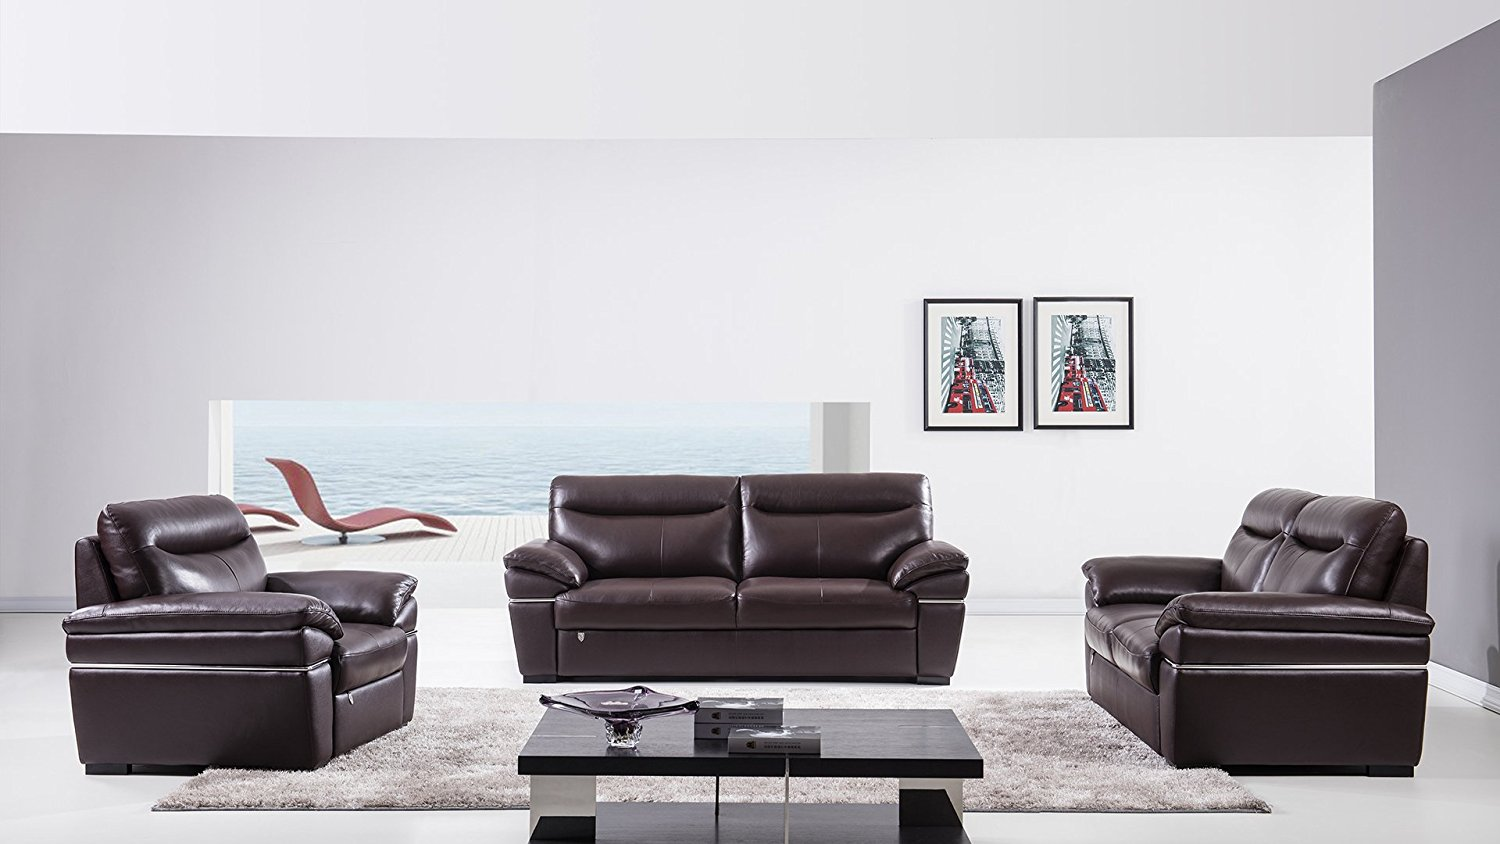 American Eagle Furniture Morris Collection 3 Piece Leather Sofa Set with Sofa, Love Seat and Leather Armchair, Dark Brown Chocolate